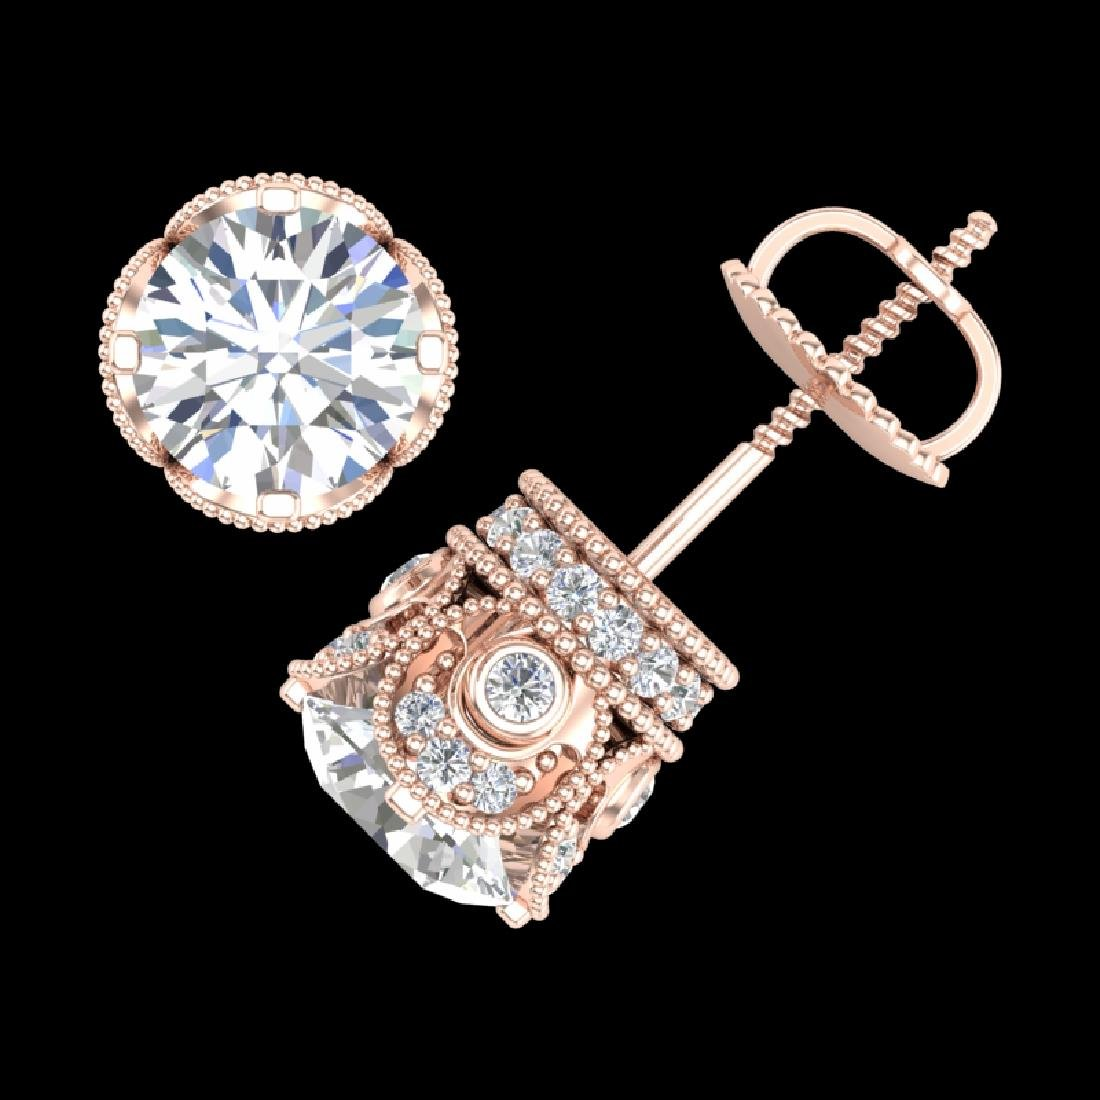 3 CTW VS/SI Diamond Solitaire Art Deco Stud Earrings